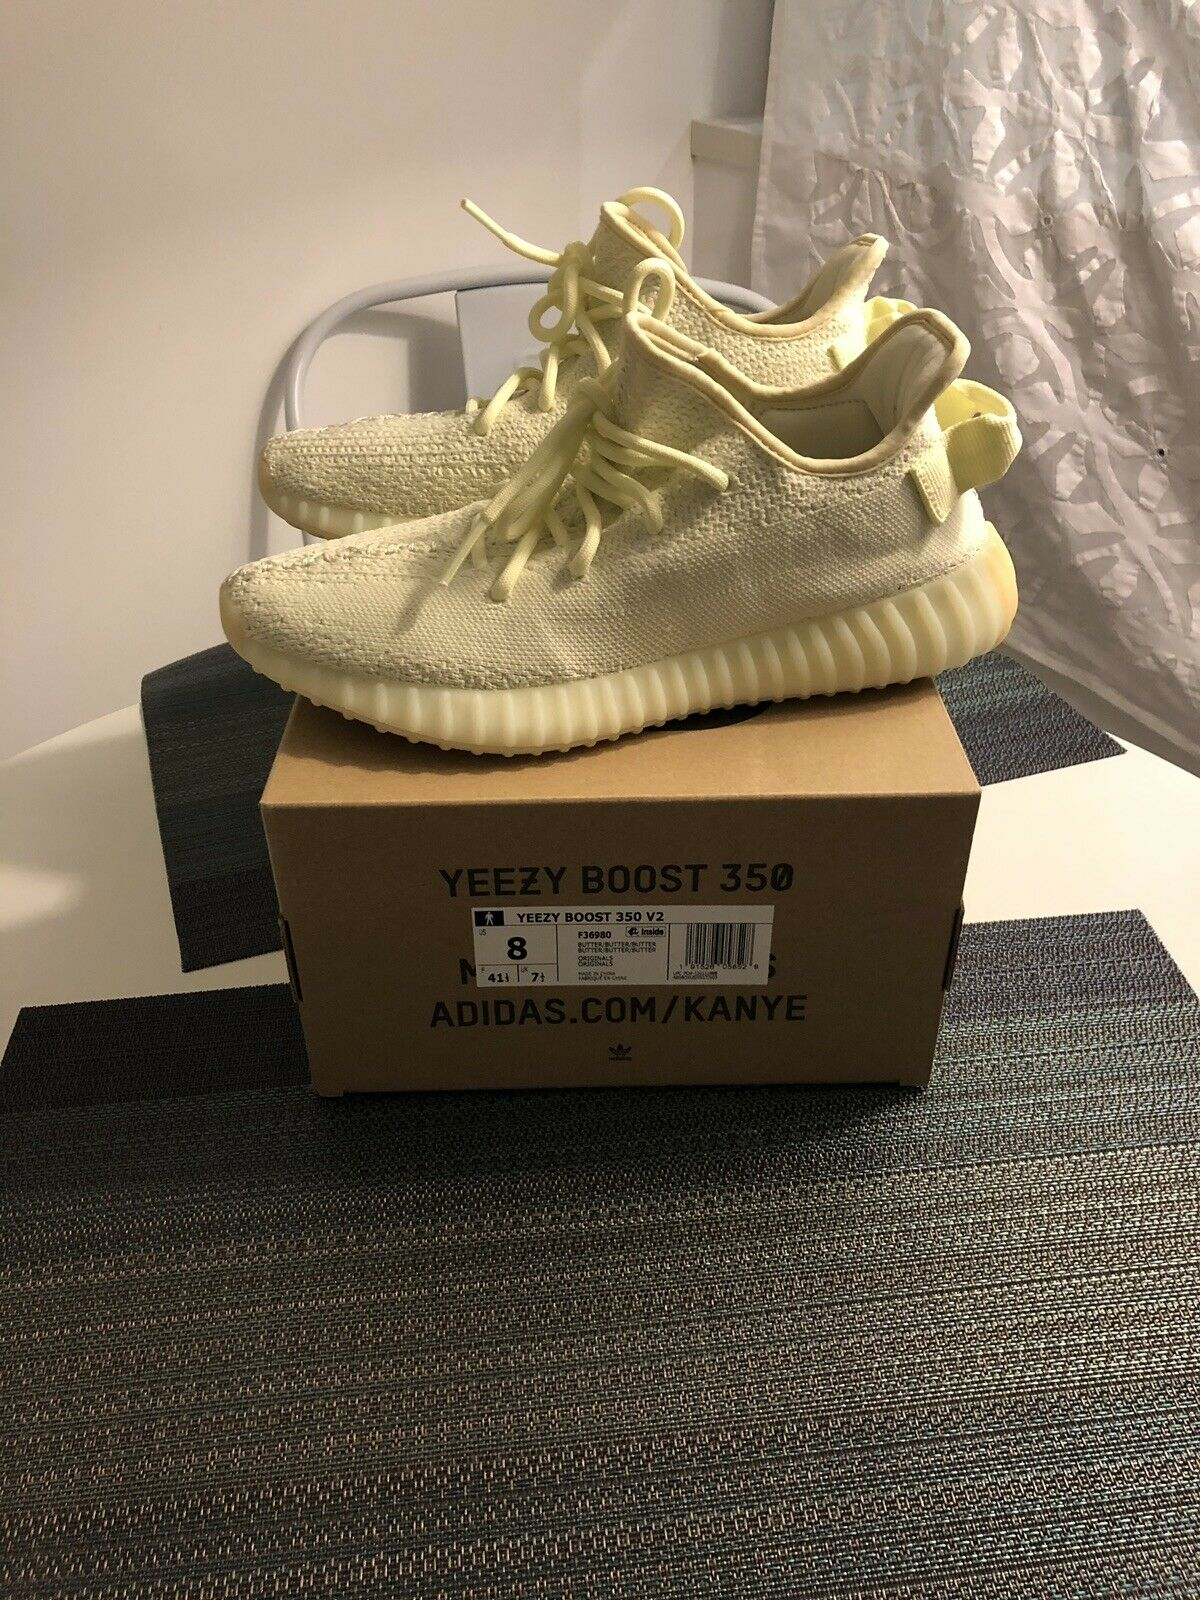 yeezy boost 350 gold